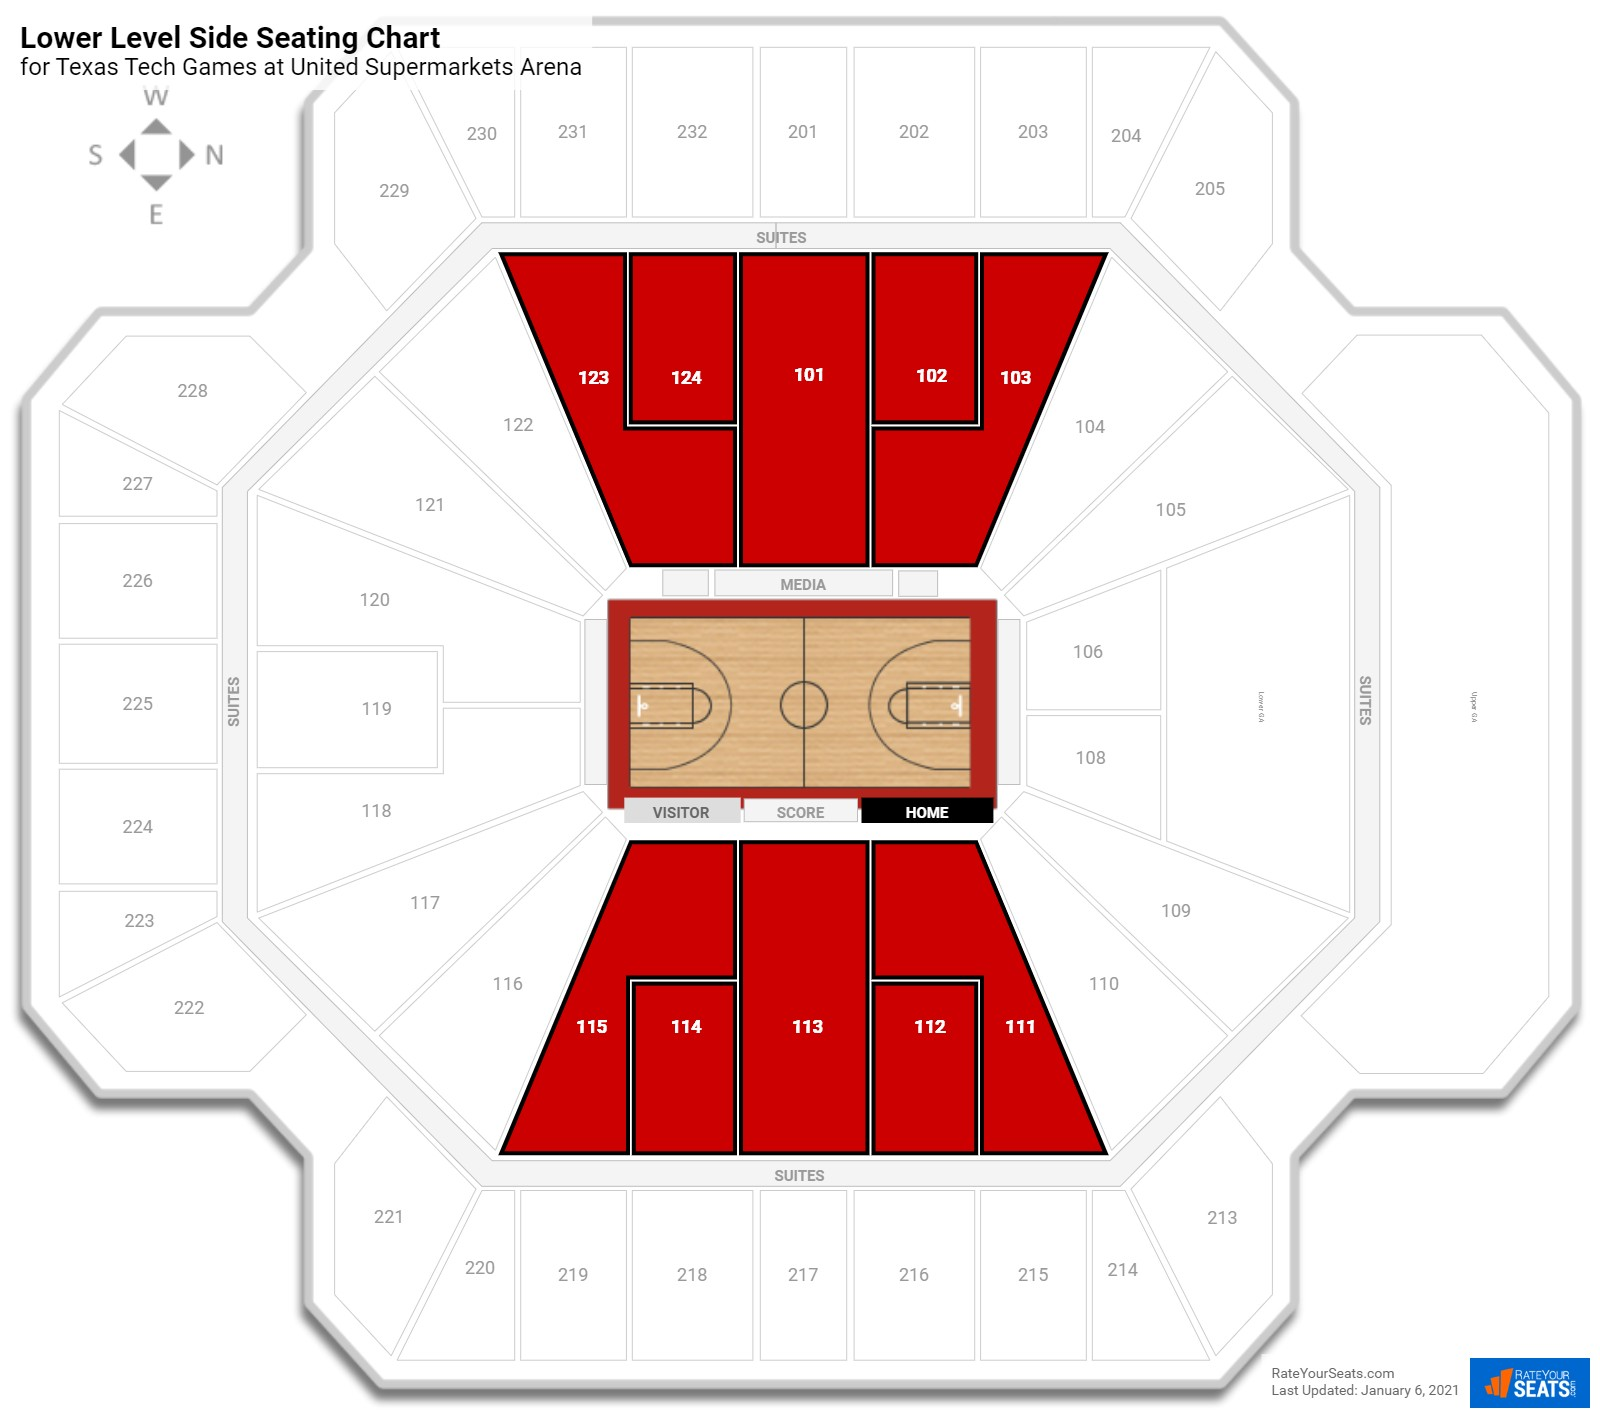 United Supermarkets Arena Lower Level Side Seating Chart